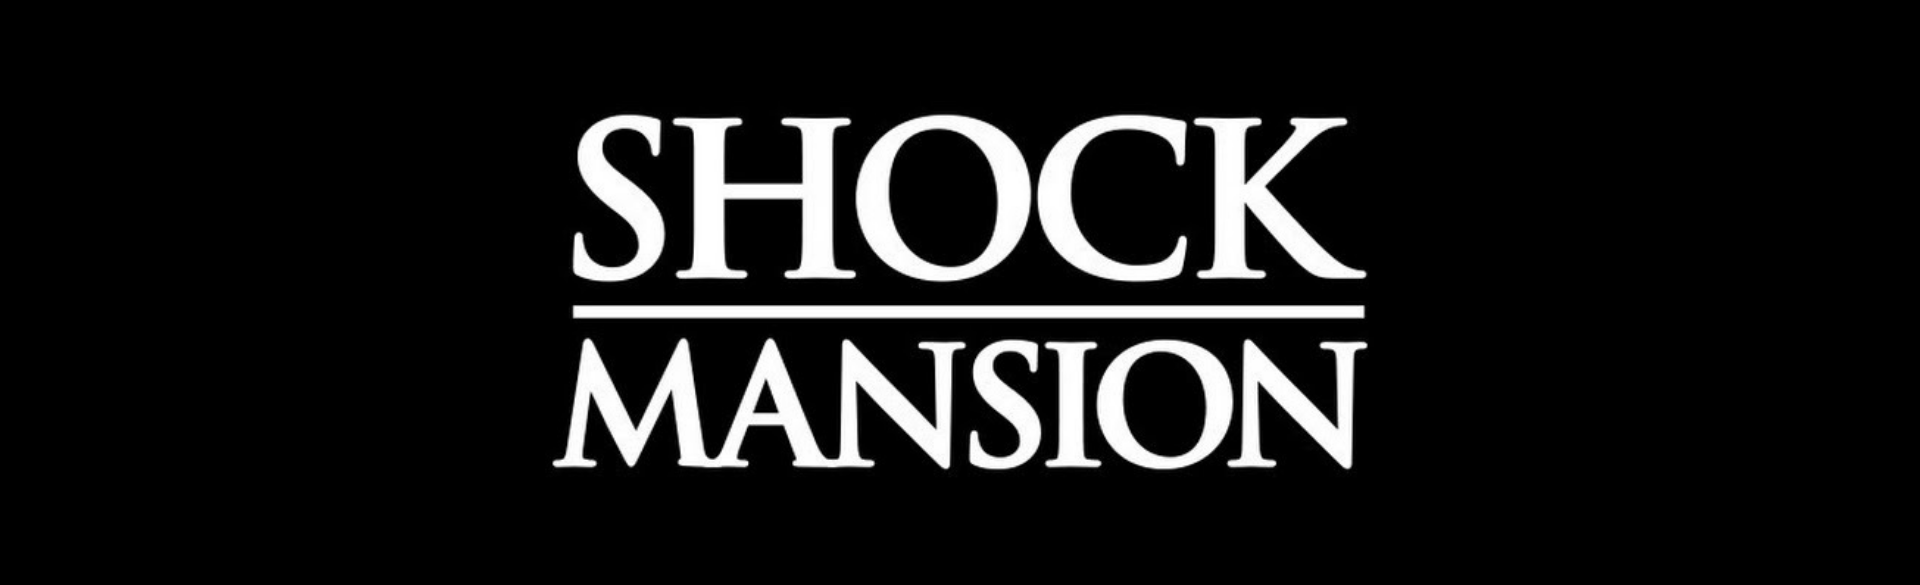 SHOCK MANSION